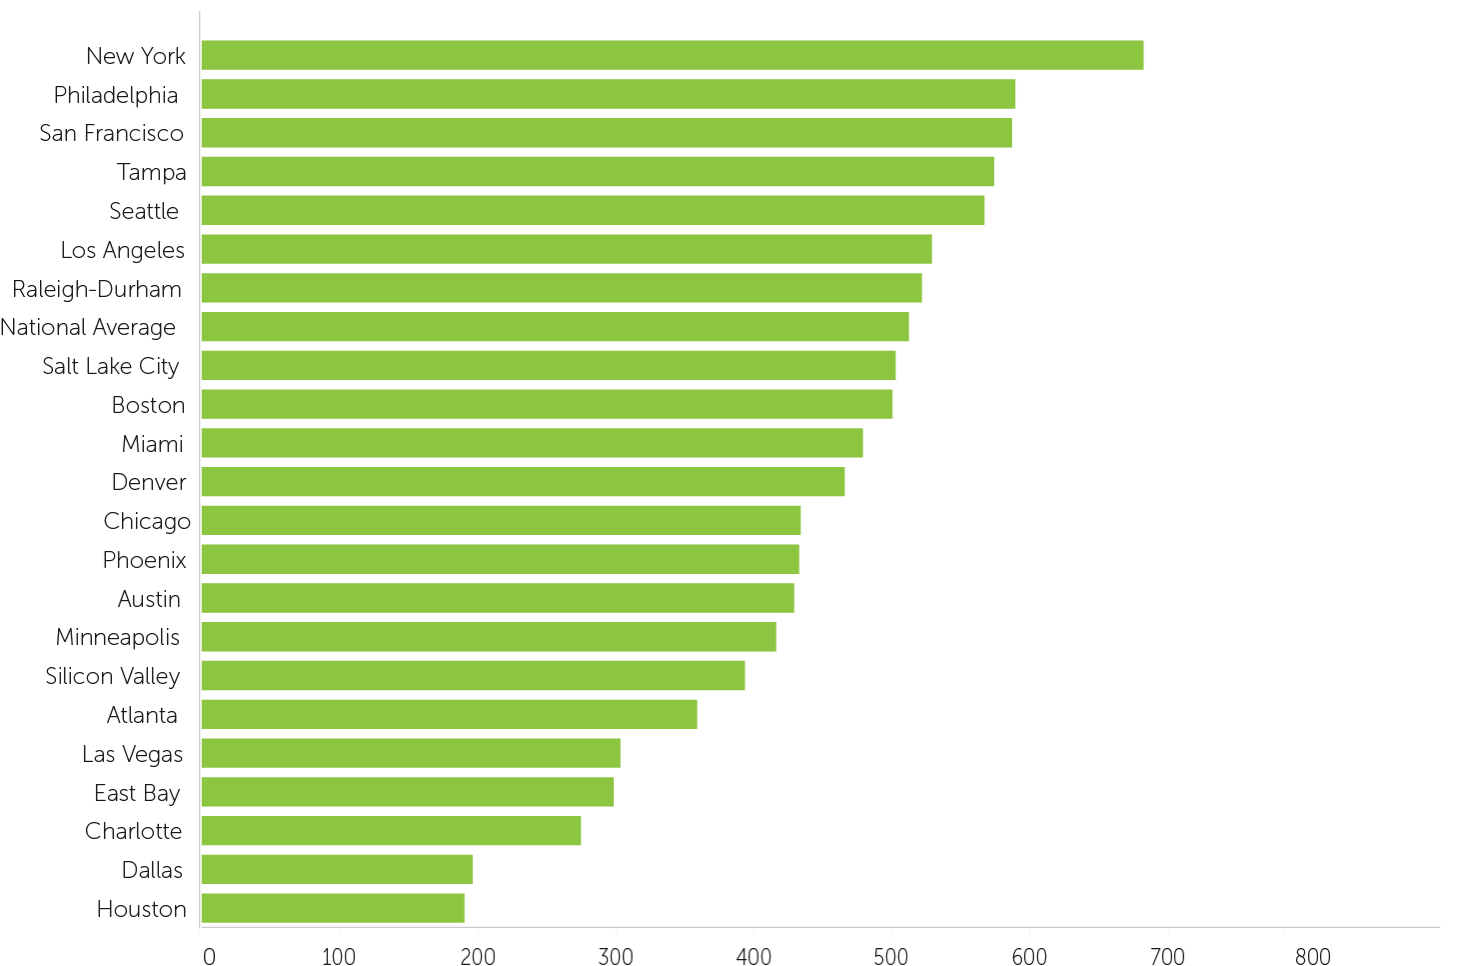 Average Monthly Rent per Person